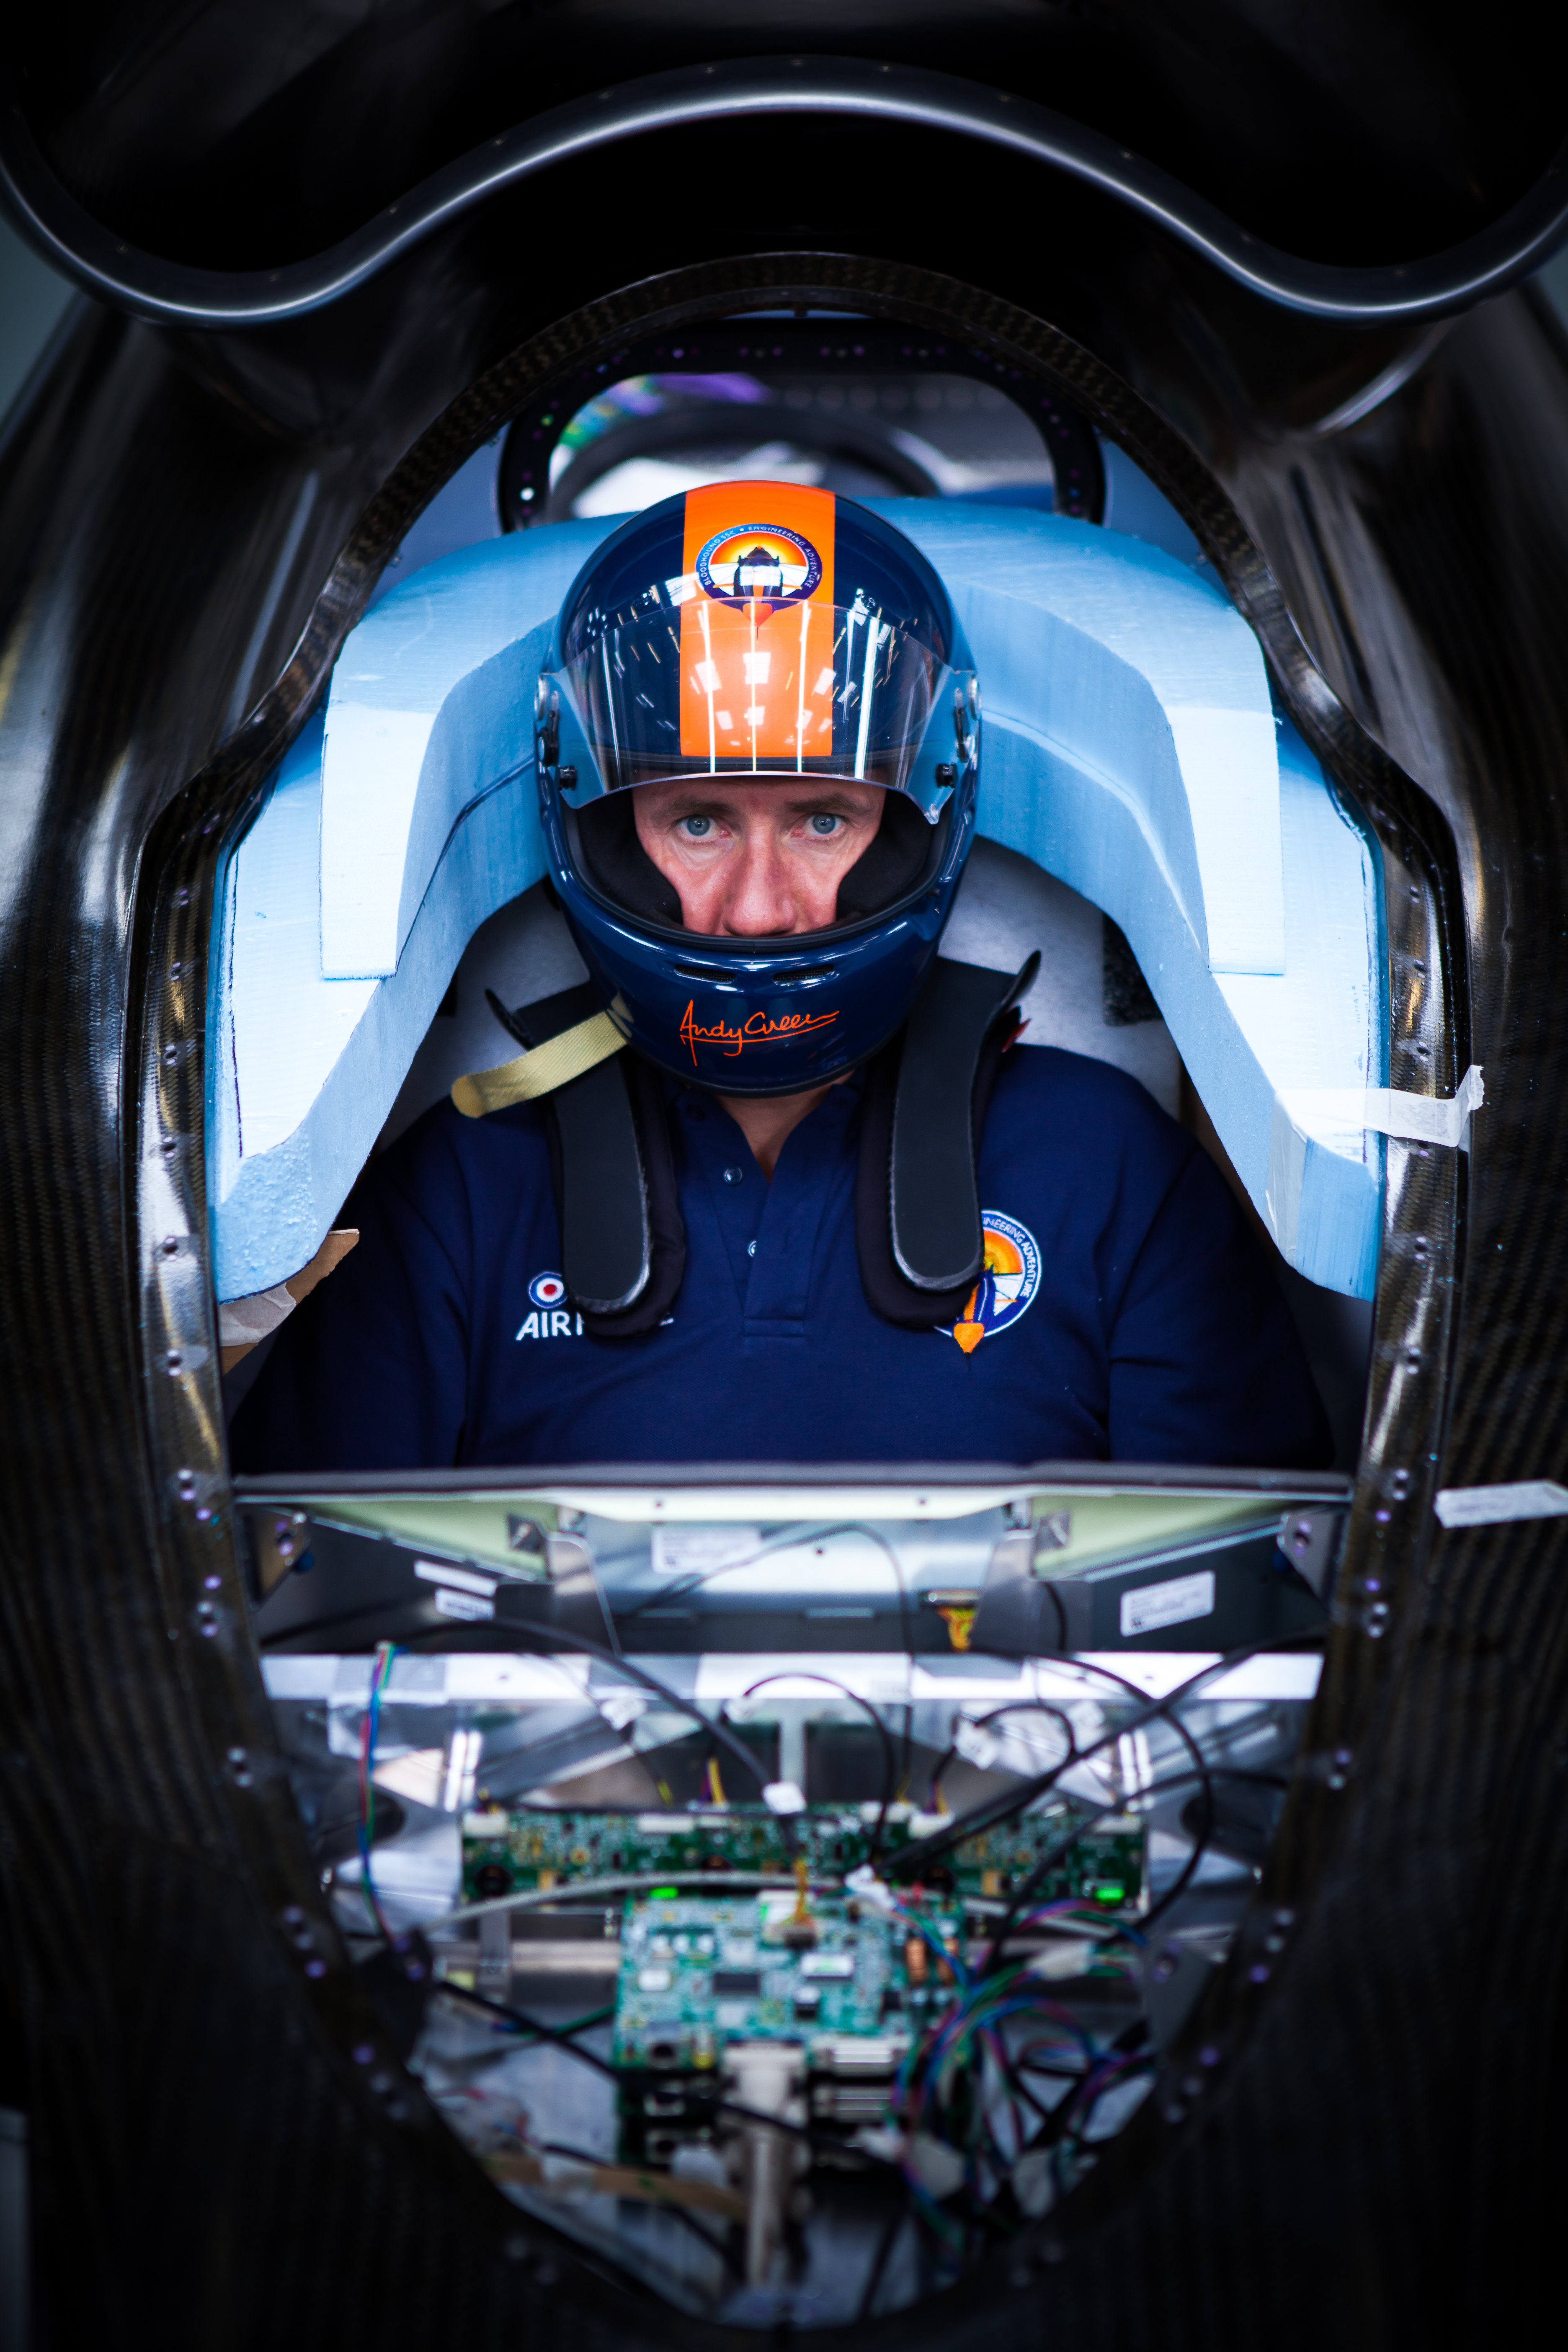 Andy Green Is Getting Ready To Drive 1,000 MPH And The Cockpit Of The Car Looks Like A Movie Spaceship